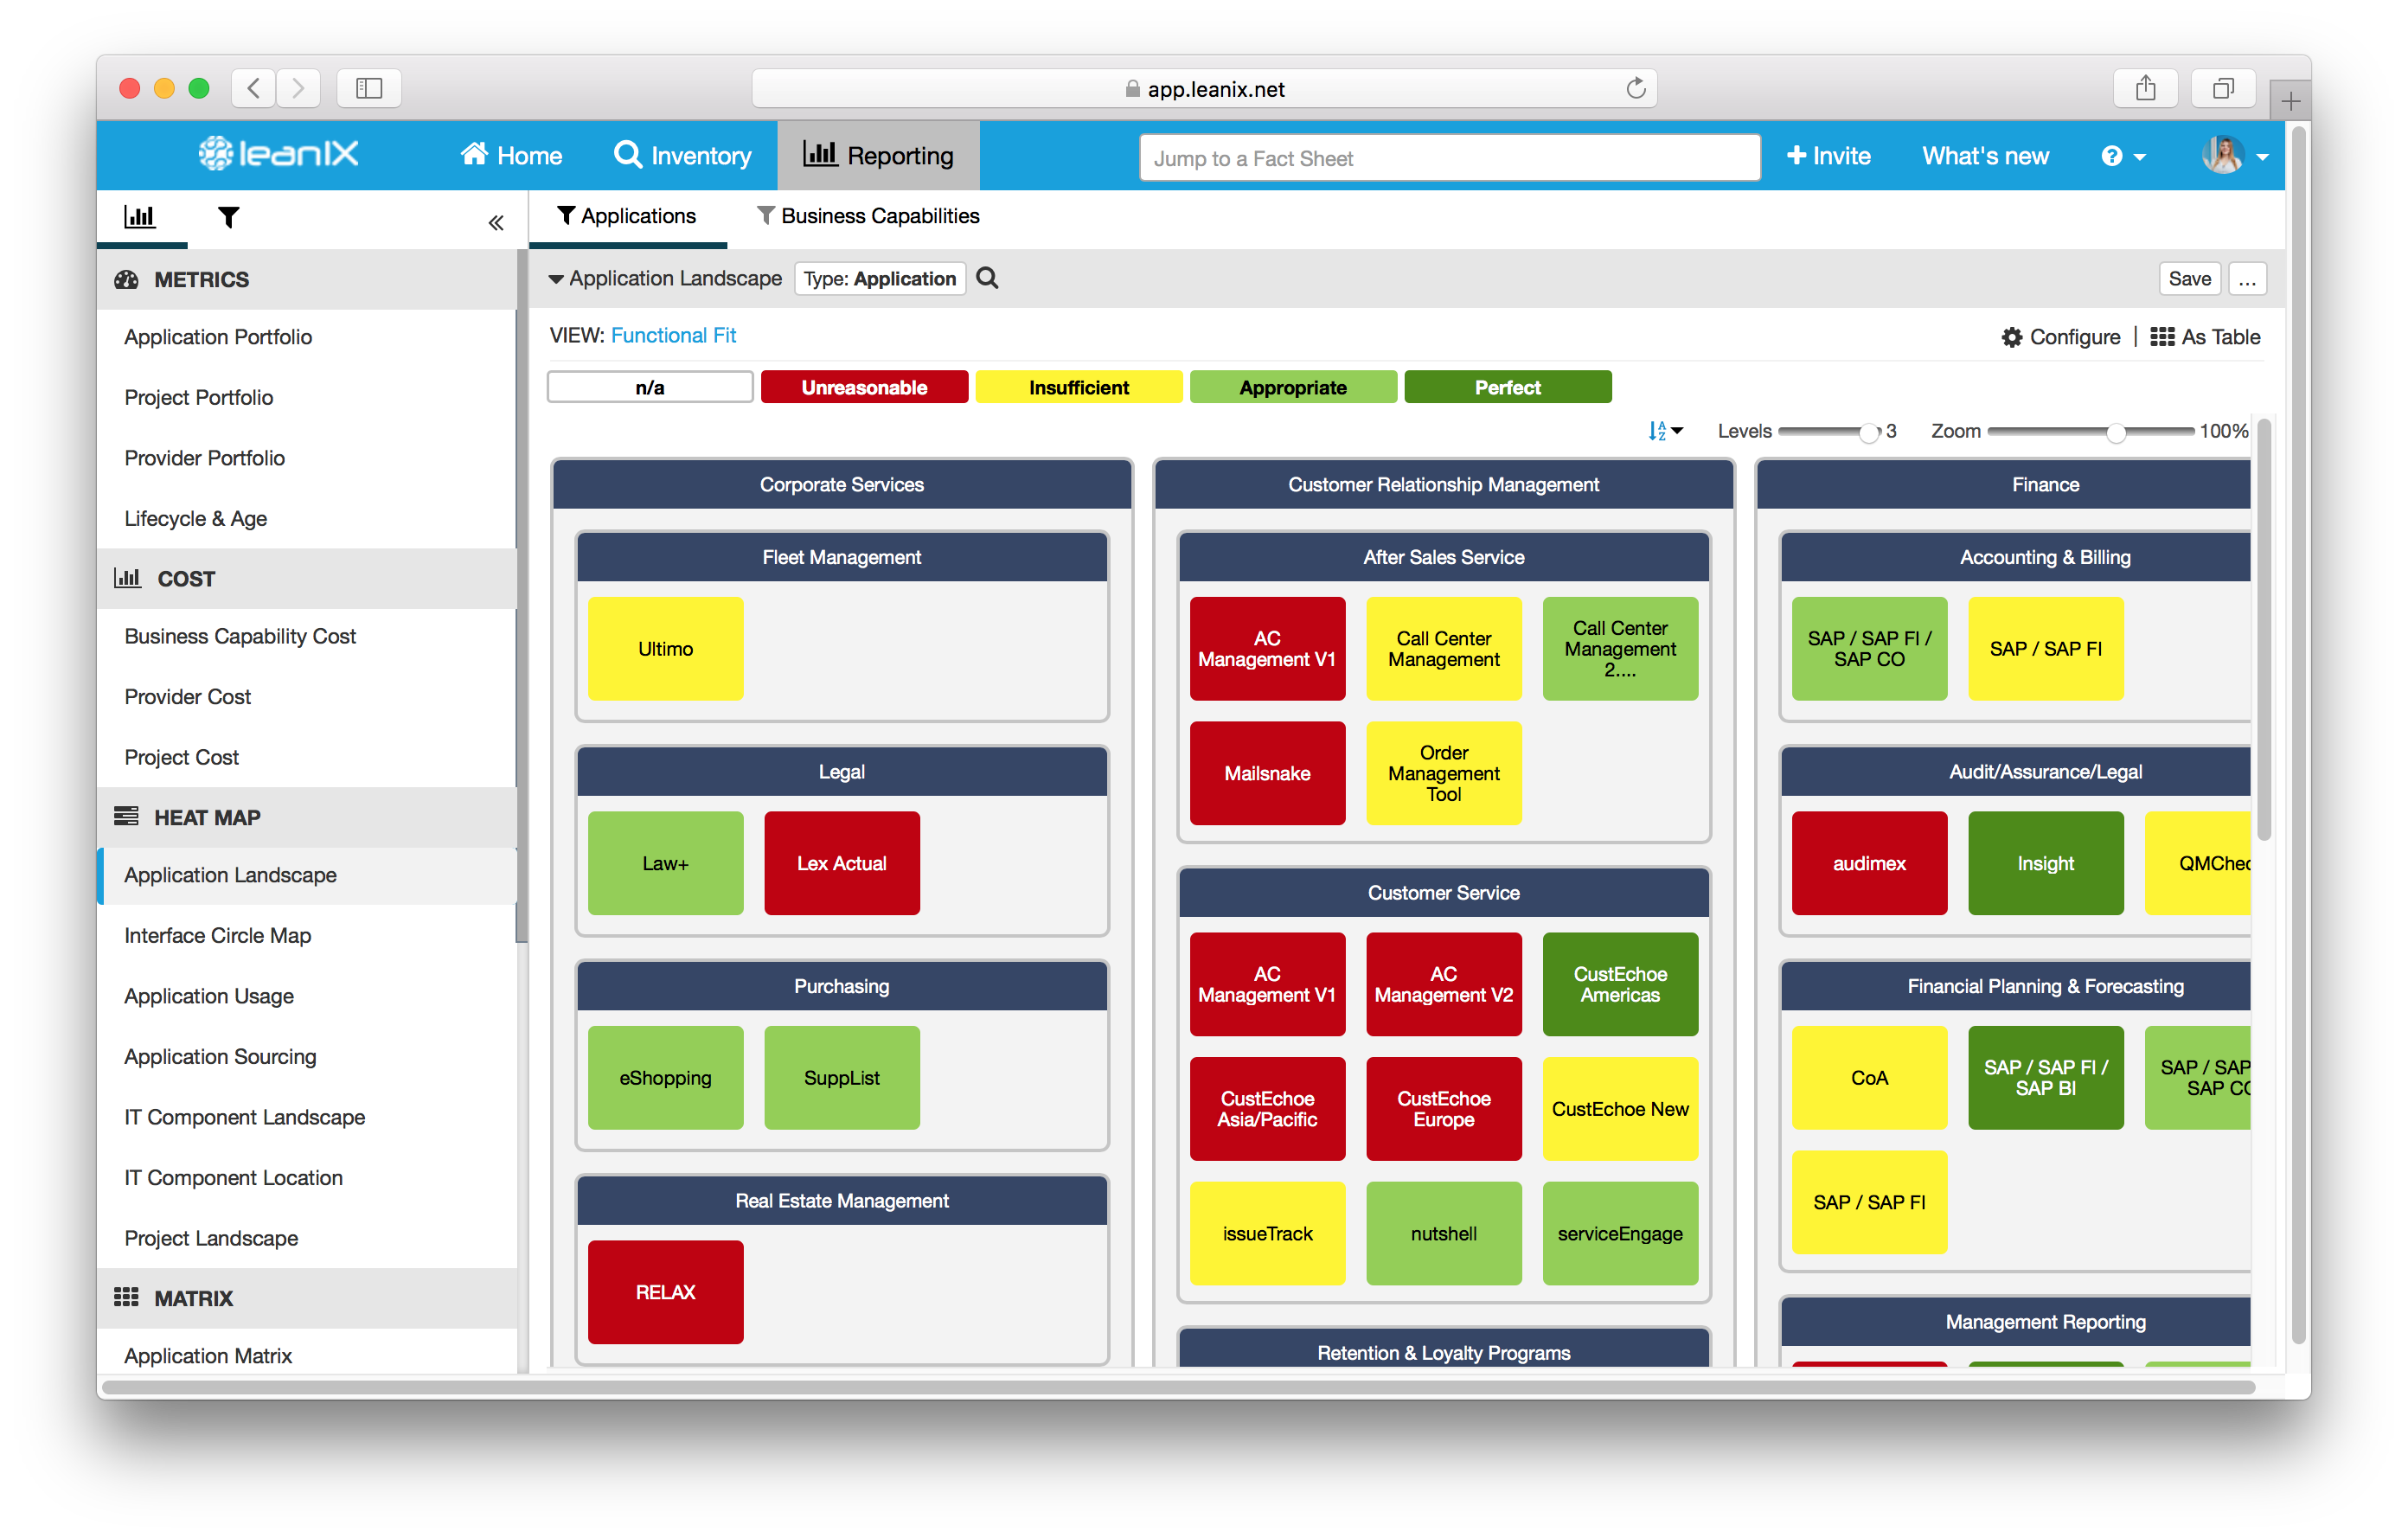 Application portfolio functional fit of apps to business capabilities